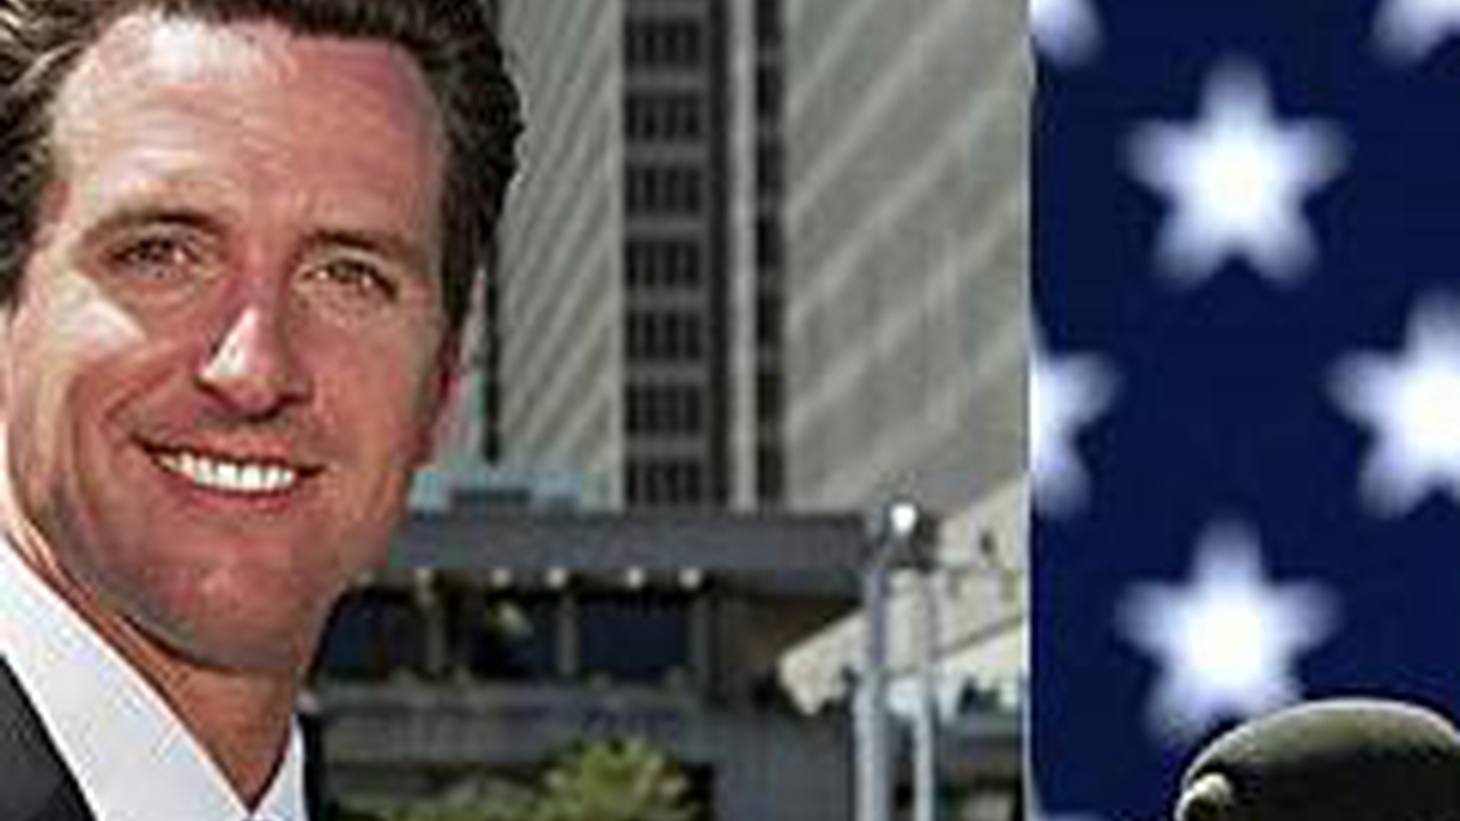 California's Republican Lieutenant Governor and his Democratic challenger are more interesting than the job they're competing for. San Francisco Mayor Gavin Newsom says he'd outperform former State Senator Abel Maldonado, who was appointed Lieutenant Governor in April. Also, Brown and Whitman discuss negative ads. On our rebroadcast of To the Point, does WikiKeaks cause damage by shedding light?